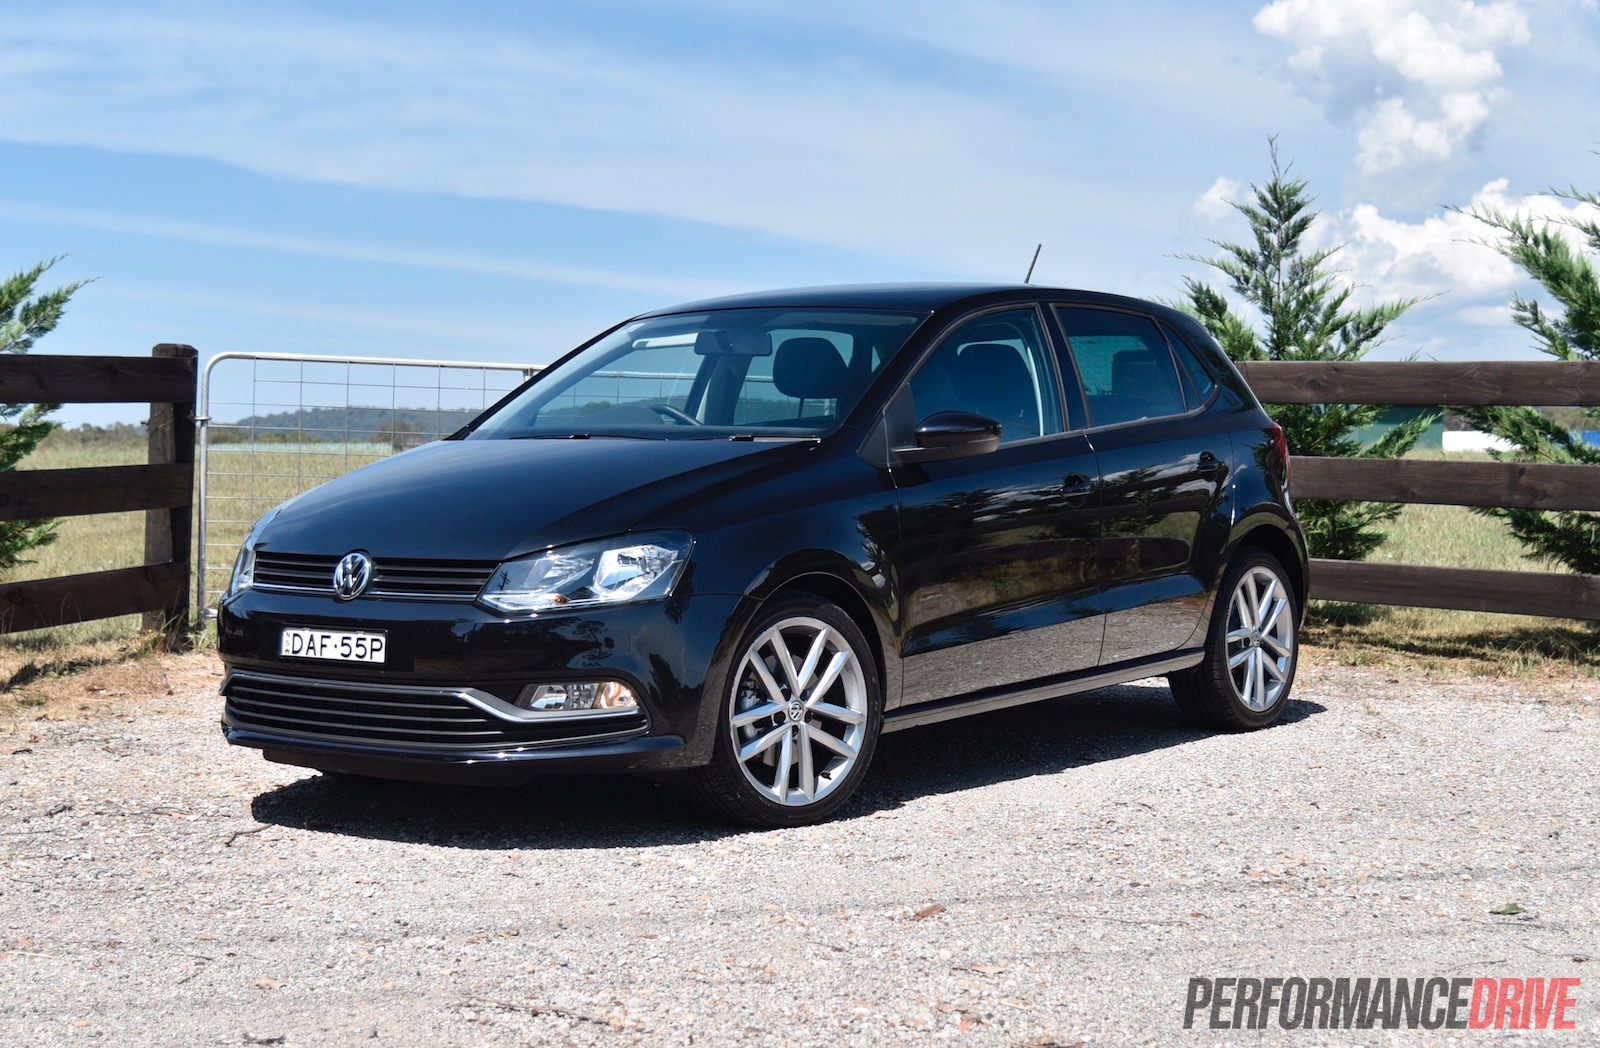 2018 Volkswagen Polo Sedan photo - 2